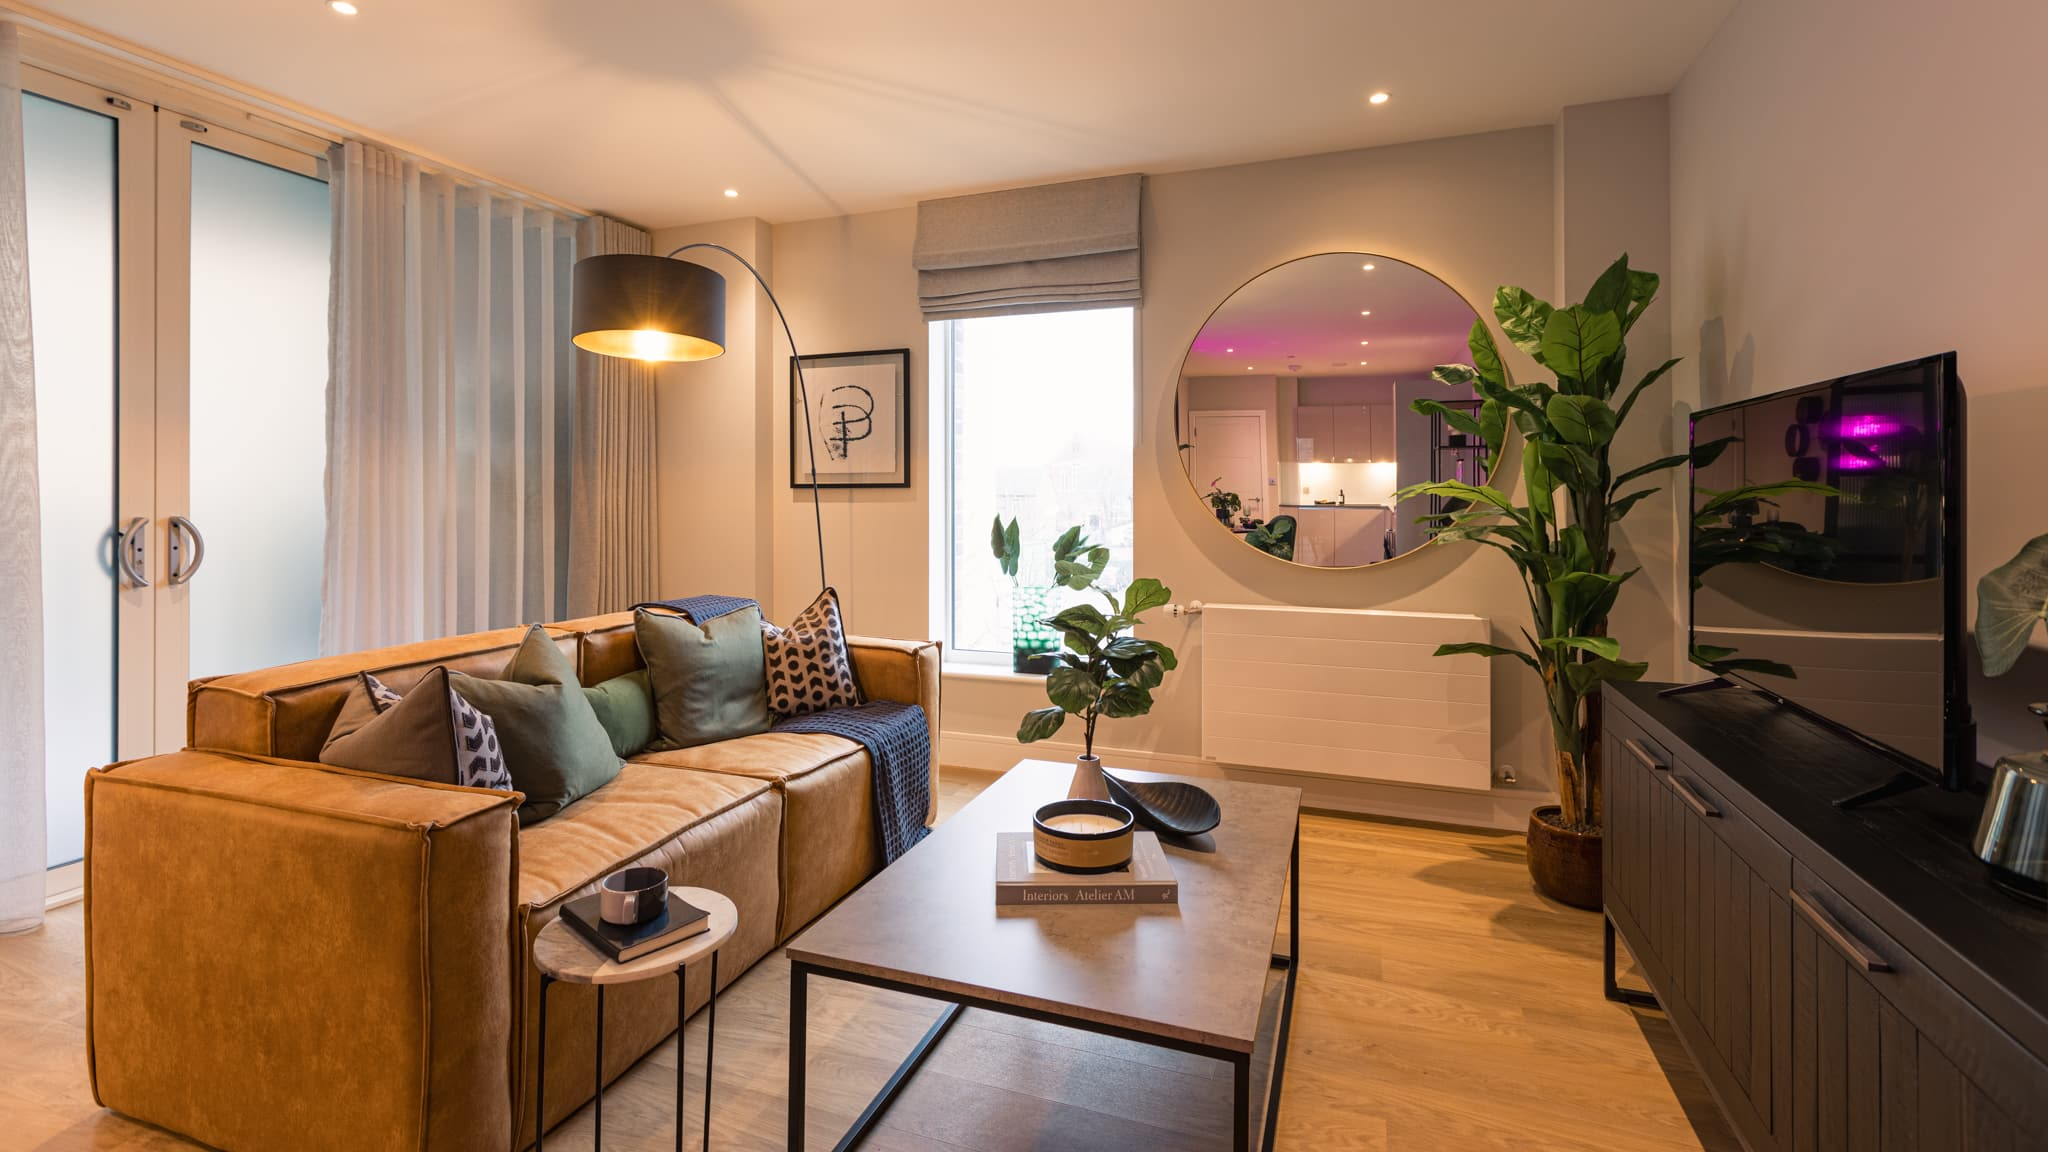 Living area at The Switch by Catalyst New Homes - Shared Ownership homes available on Share to Buy